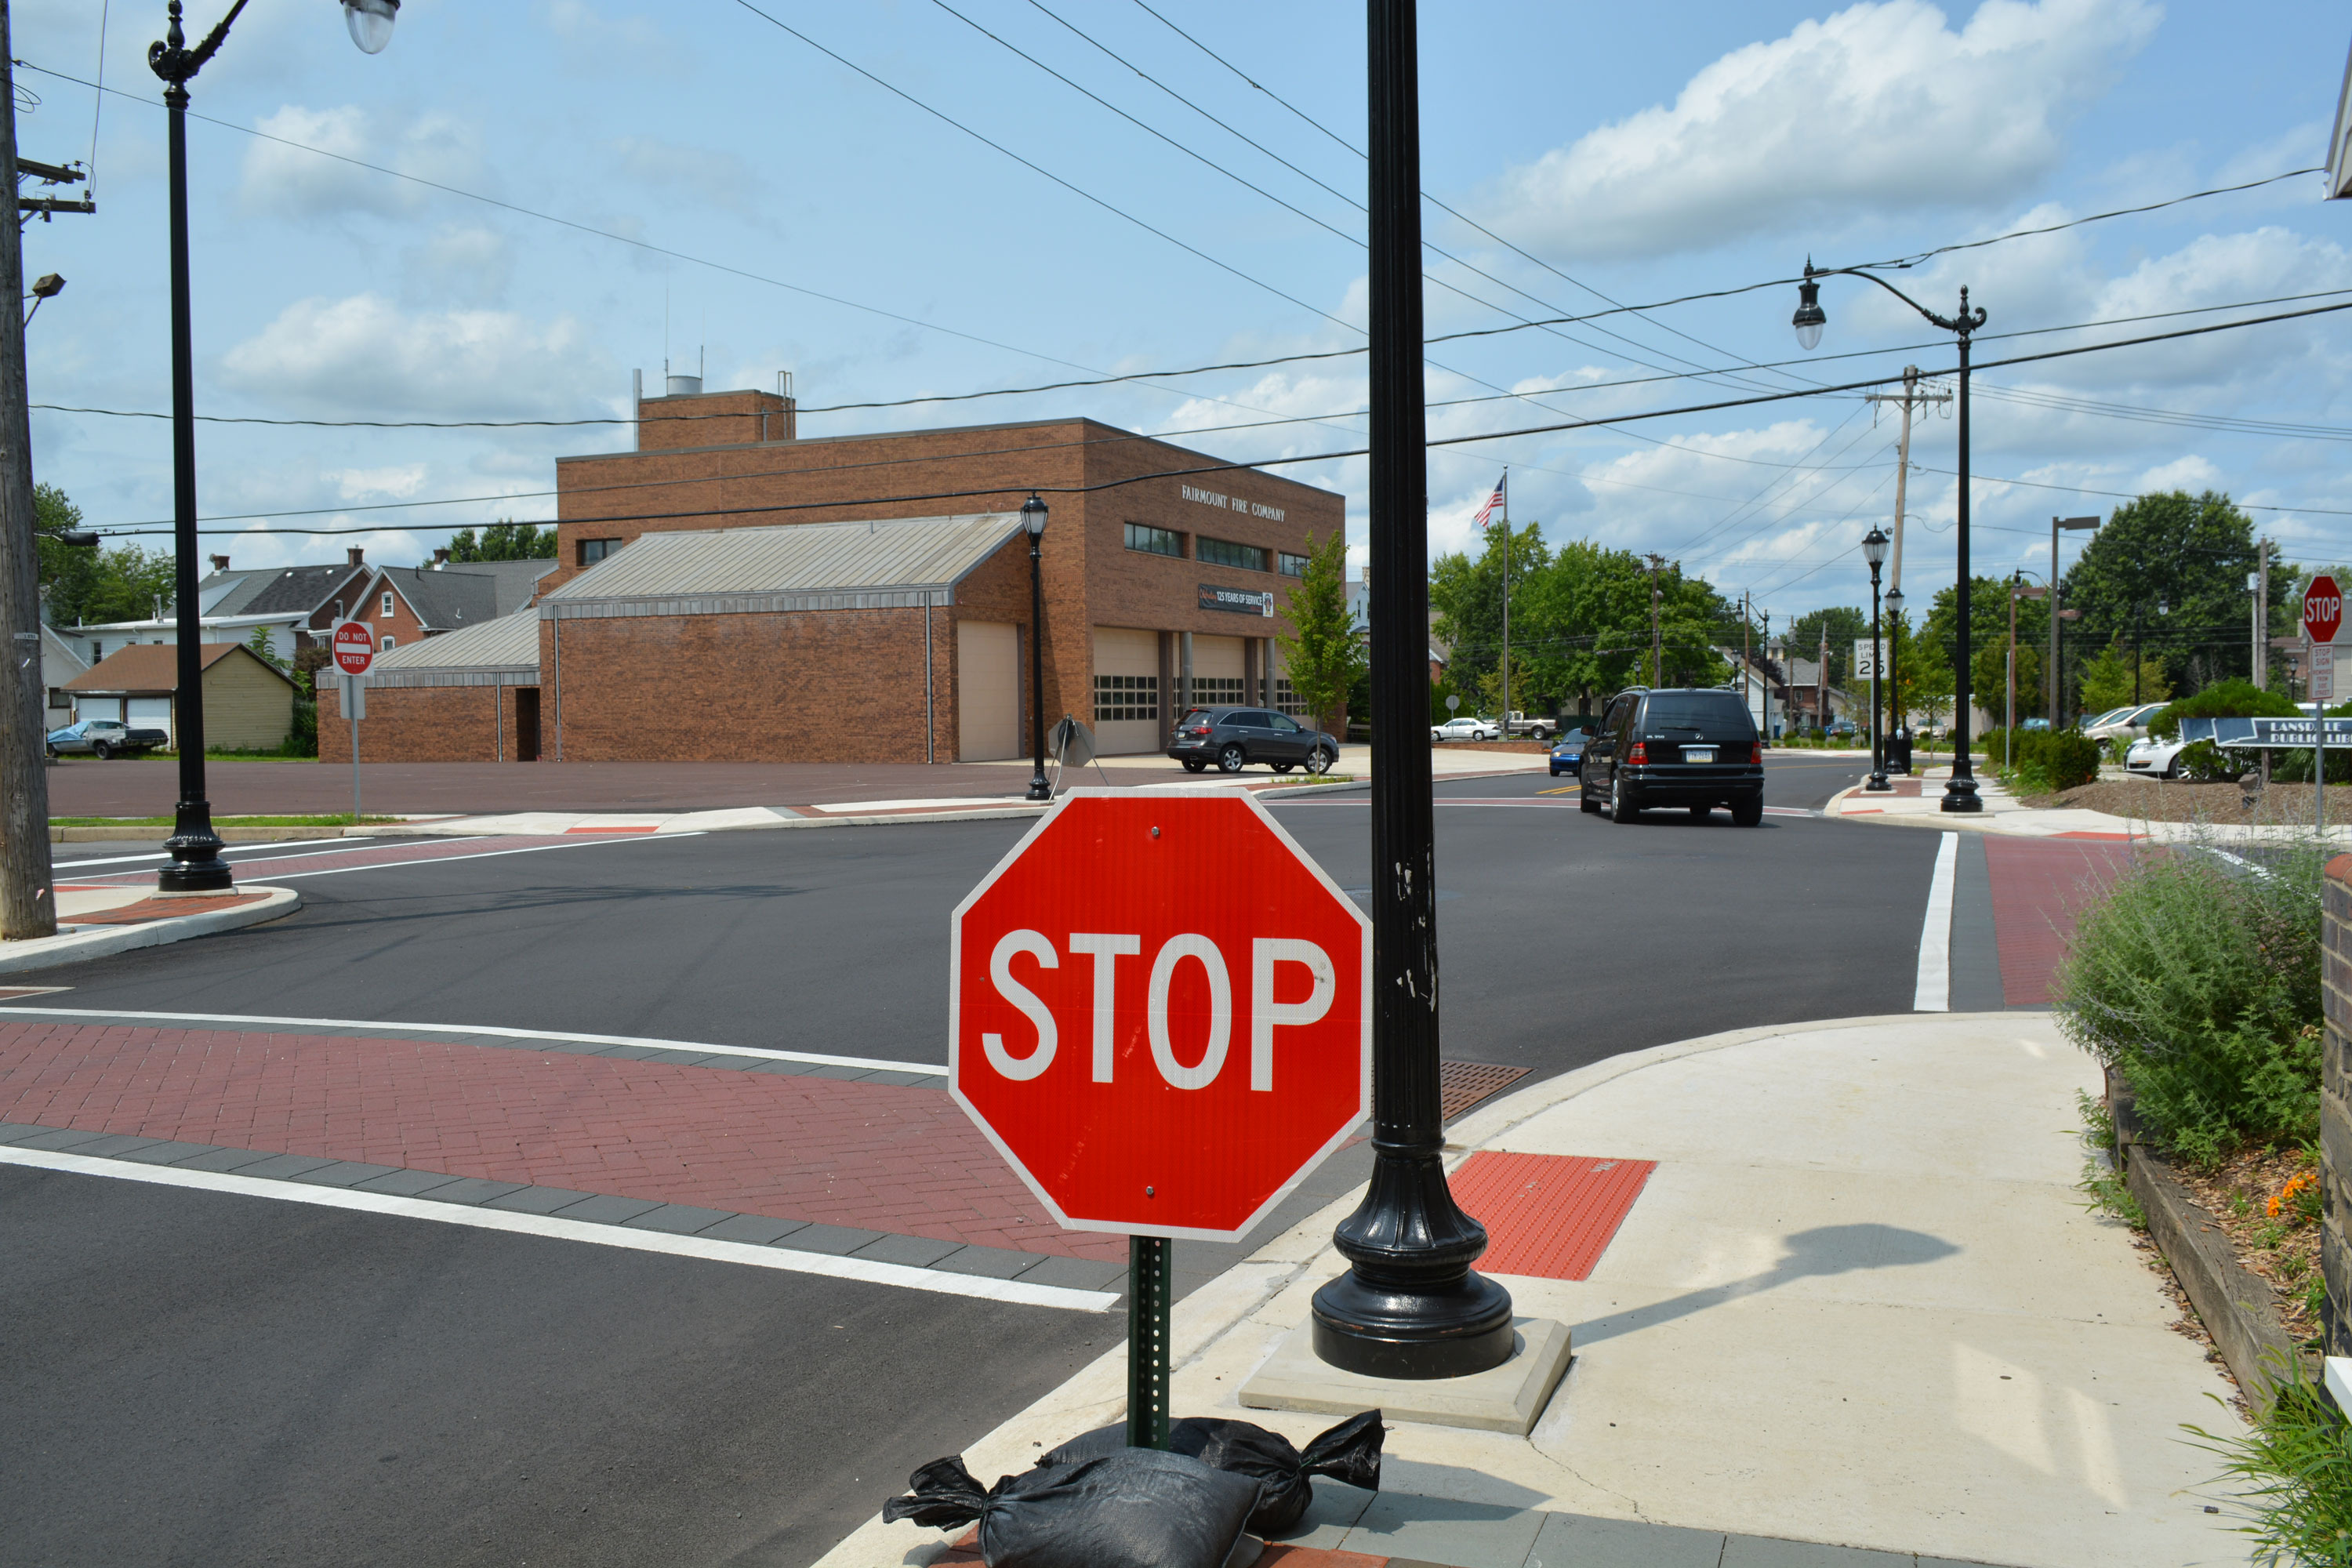 aa9402da875678bdb09d_PCTI-Stop-Sign-Removal--Vine-and-Green.jpg